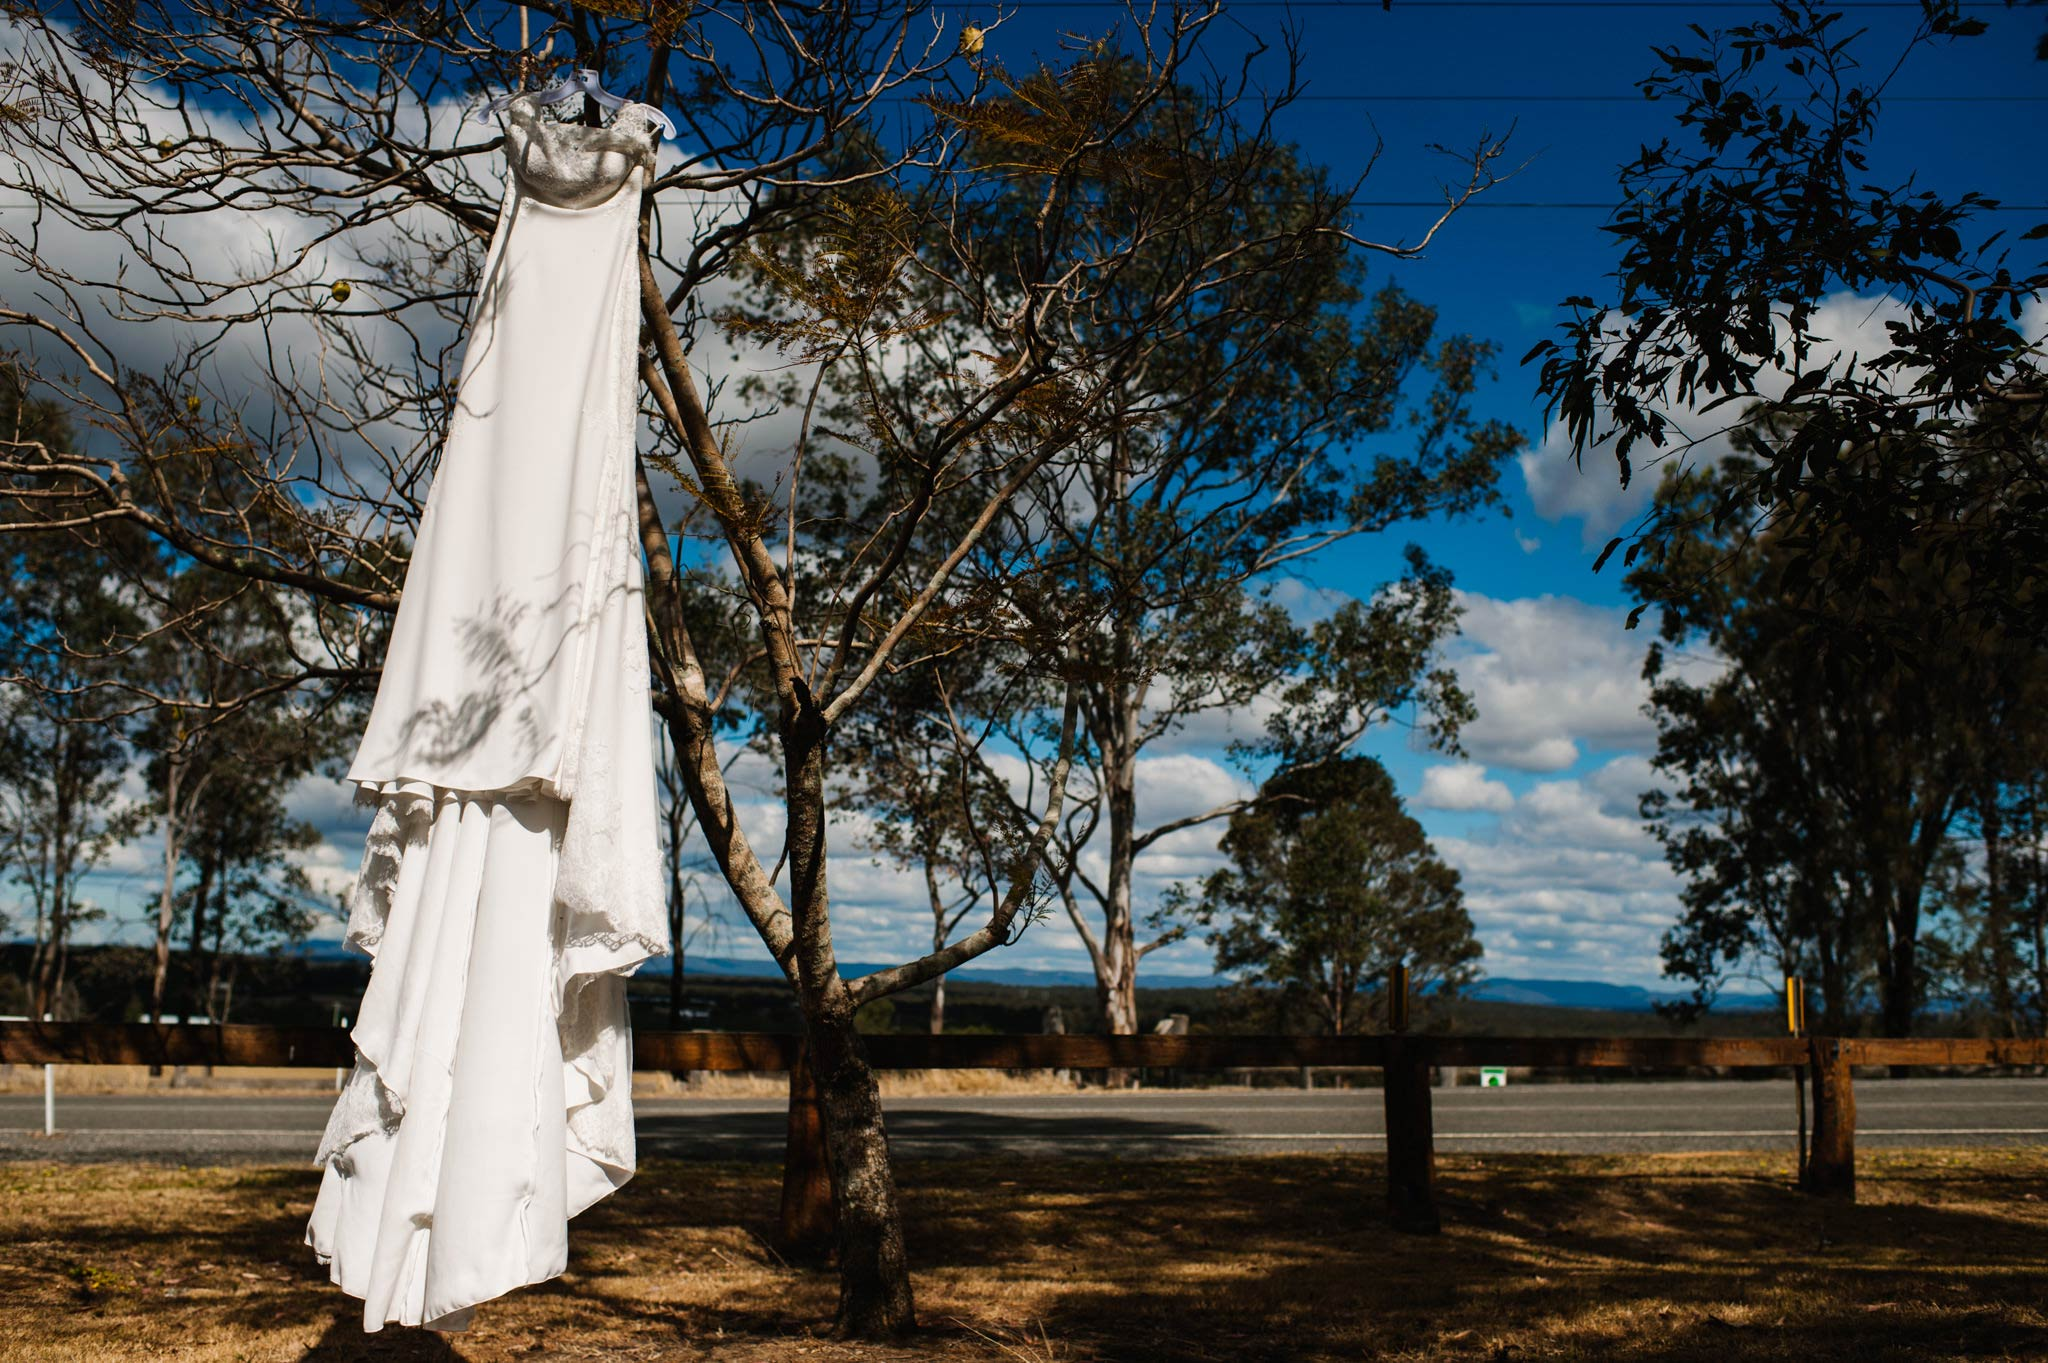 Bridal gown hanging on tree with country view